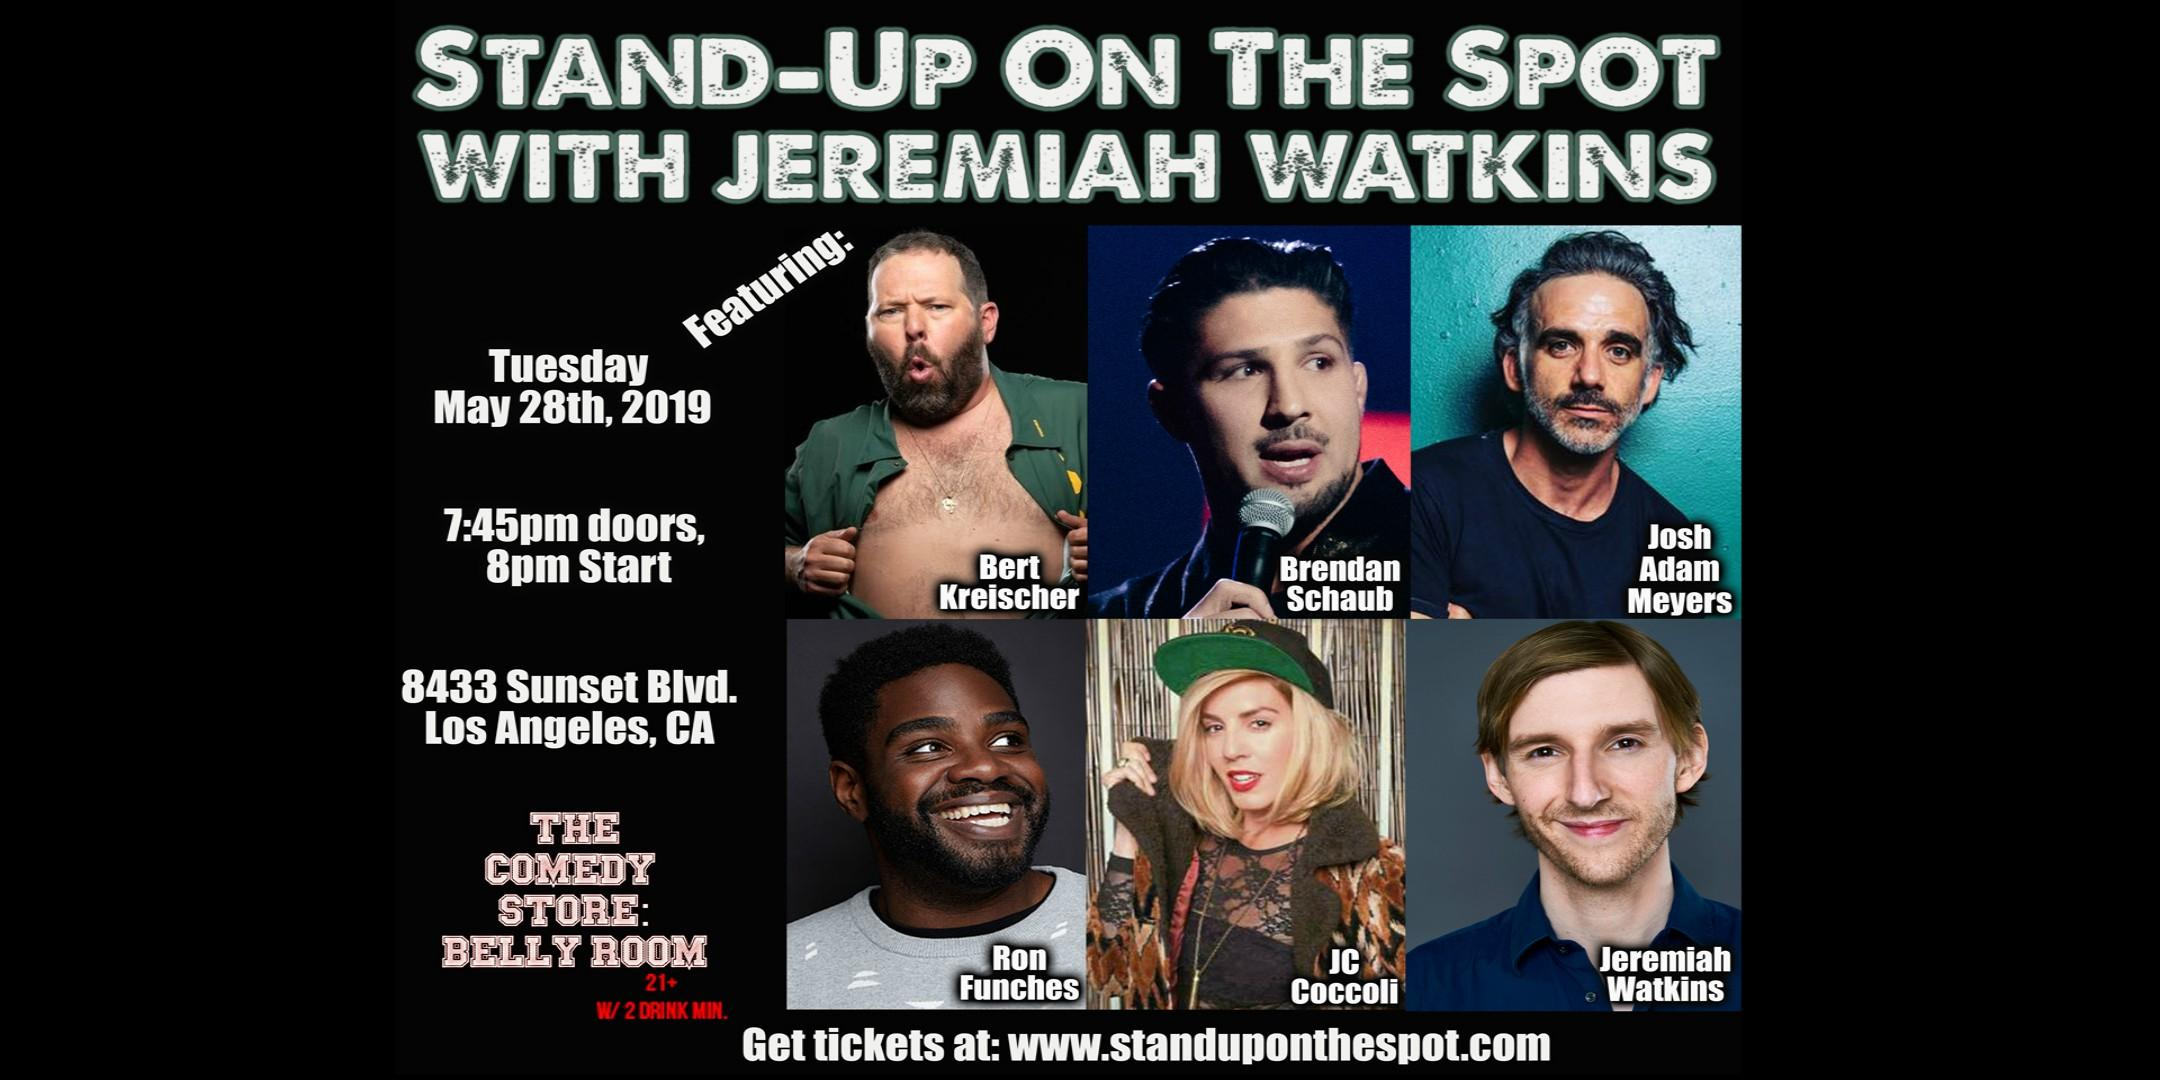 Stand-Up On The Spot with Jeremiah Watkins